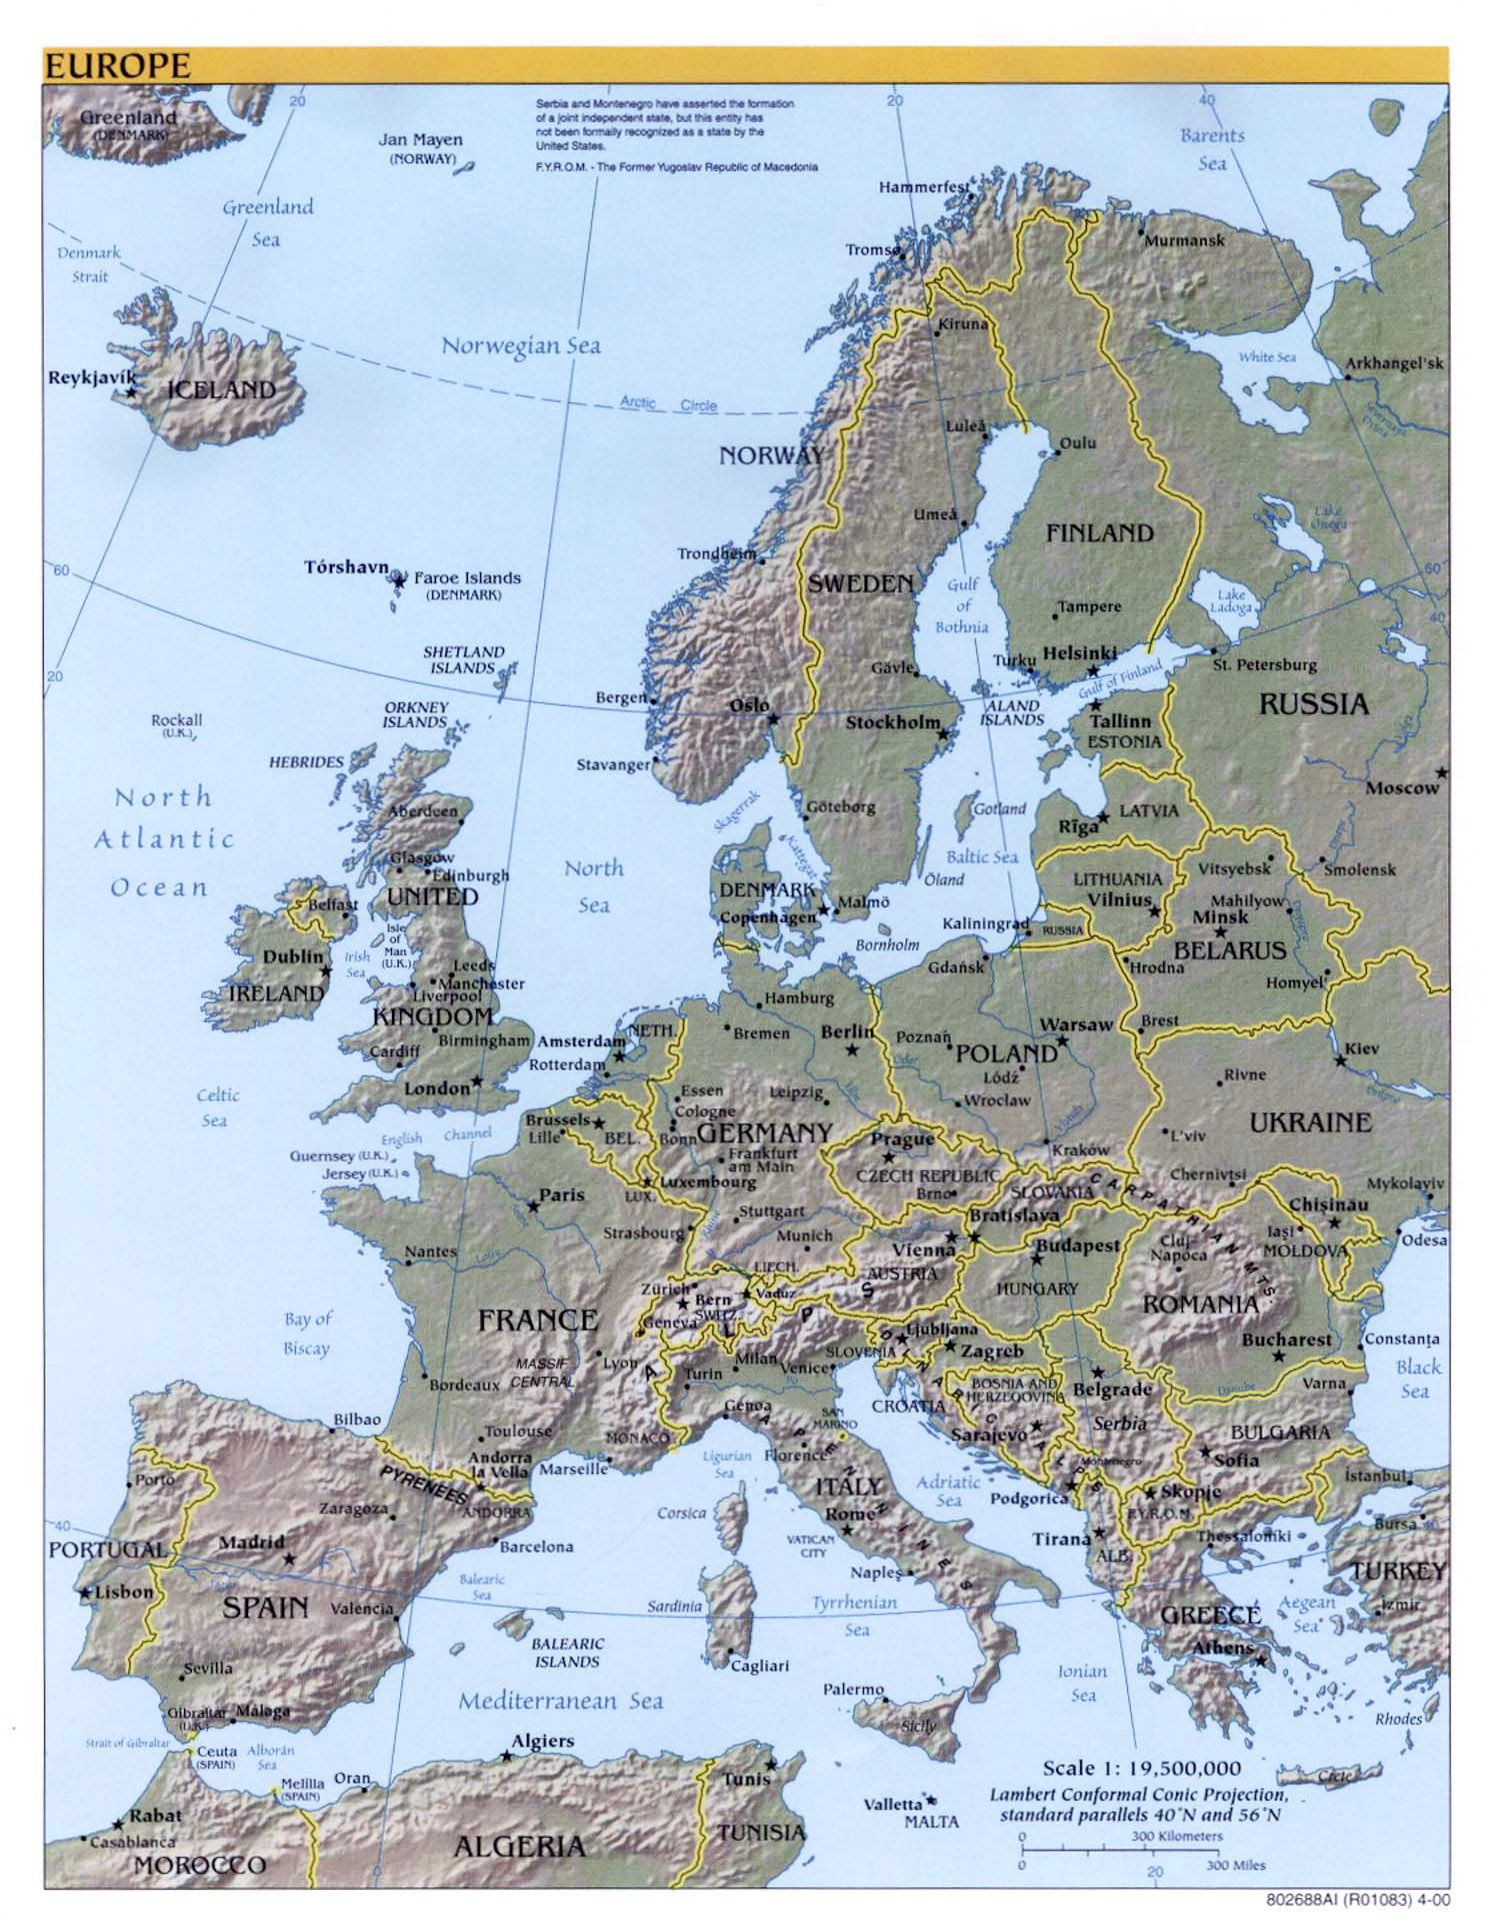 Map Of Europe And Major Cities.Maps Of Europe And European Countries Political Maps